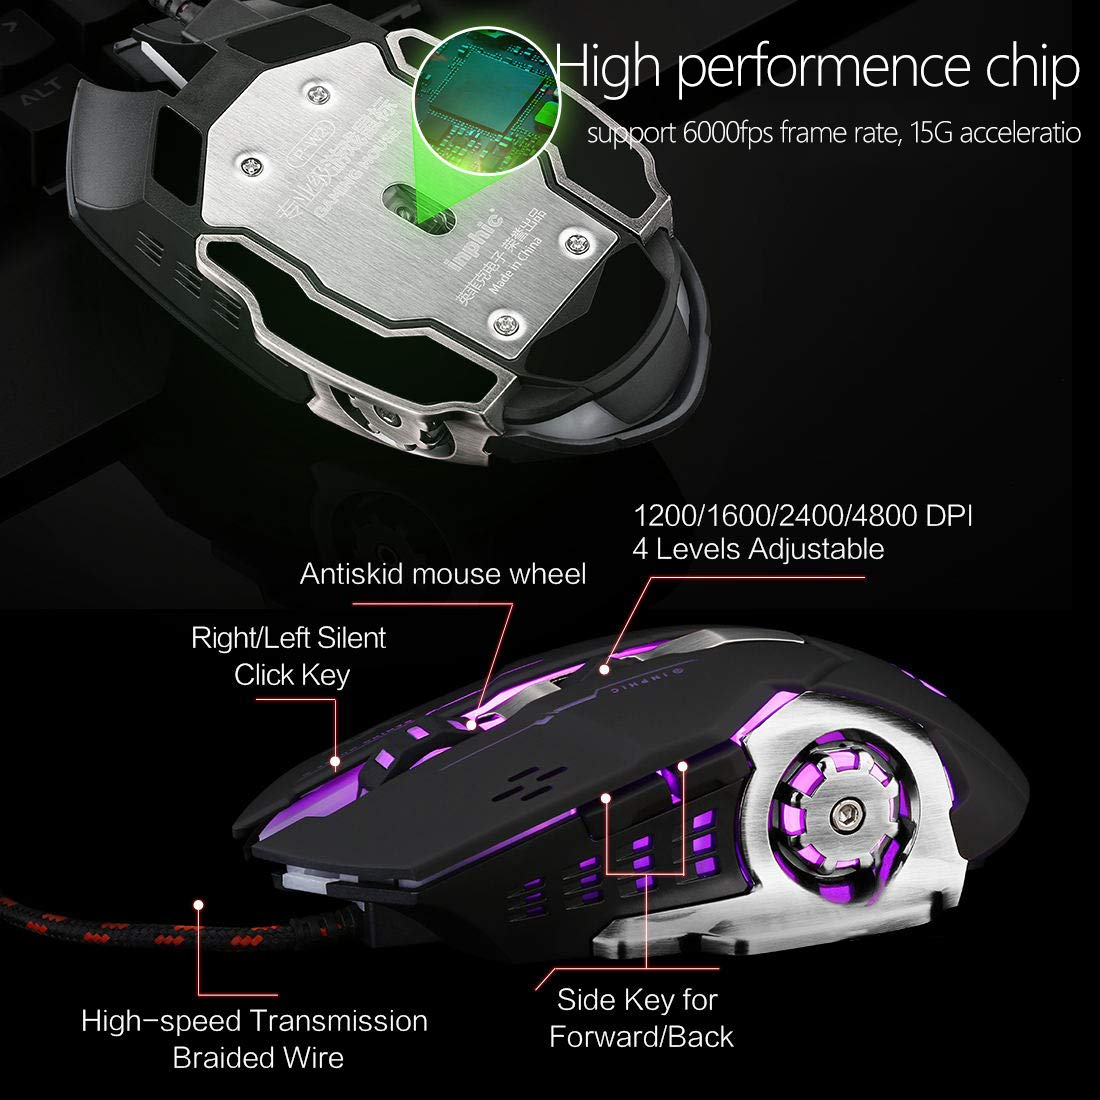 Gaming Mouse Mute Silent Click,Inphic USB Wired Optical Gaming Mice with LED Optical, 4 DPI Adjustment Levels, 6 Buttons for Laptop, PC, Mac (Metallic Black)